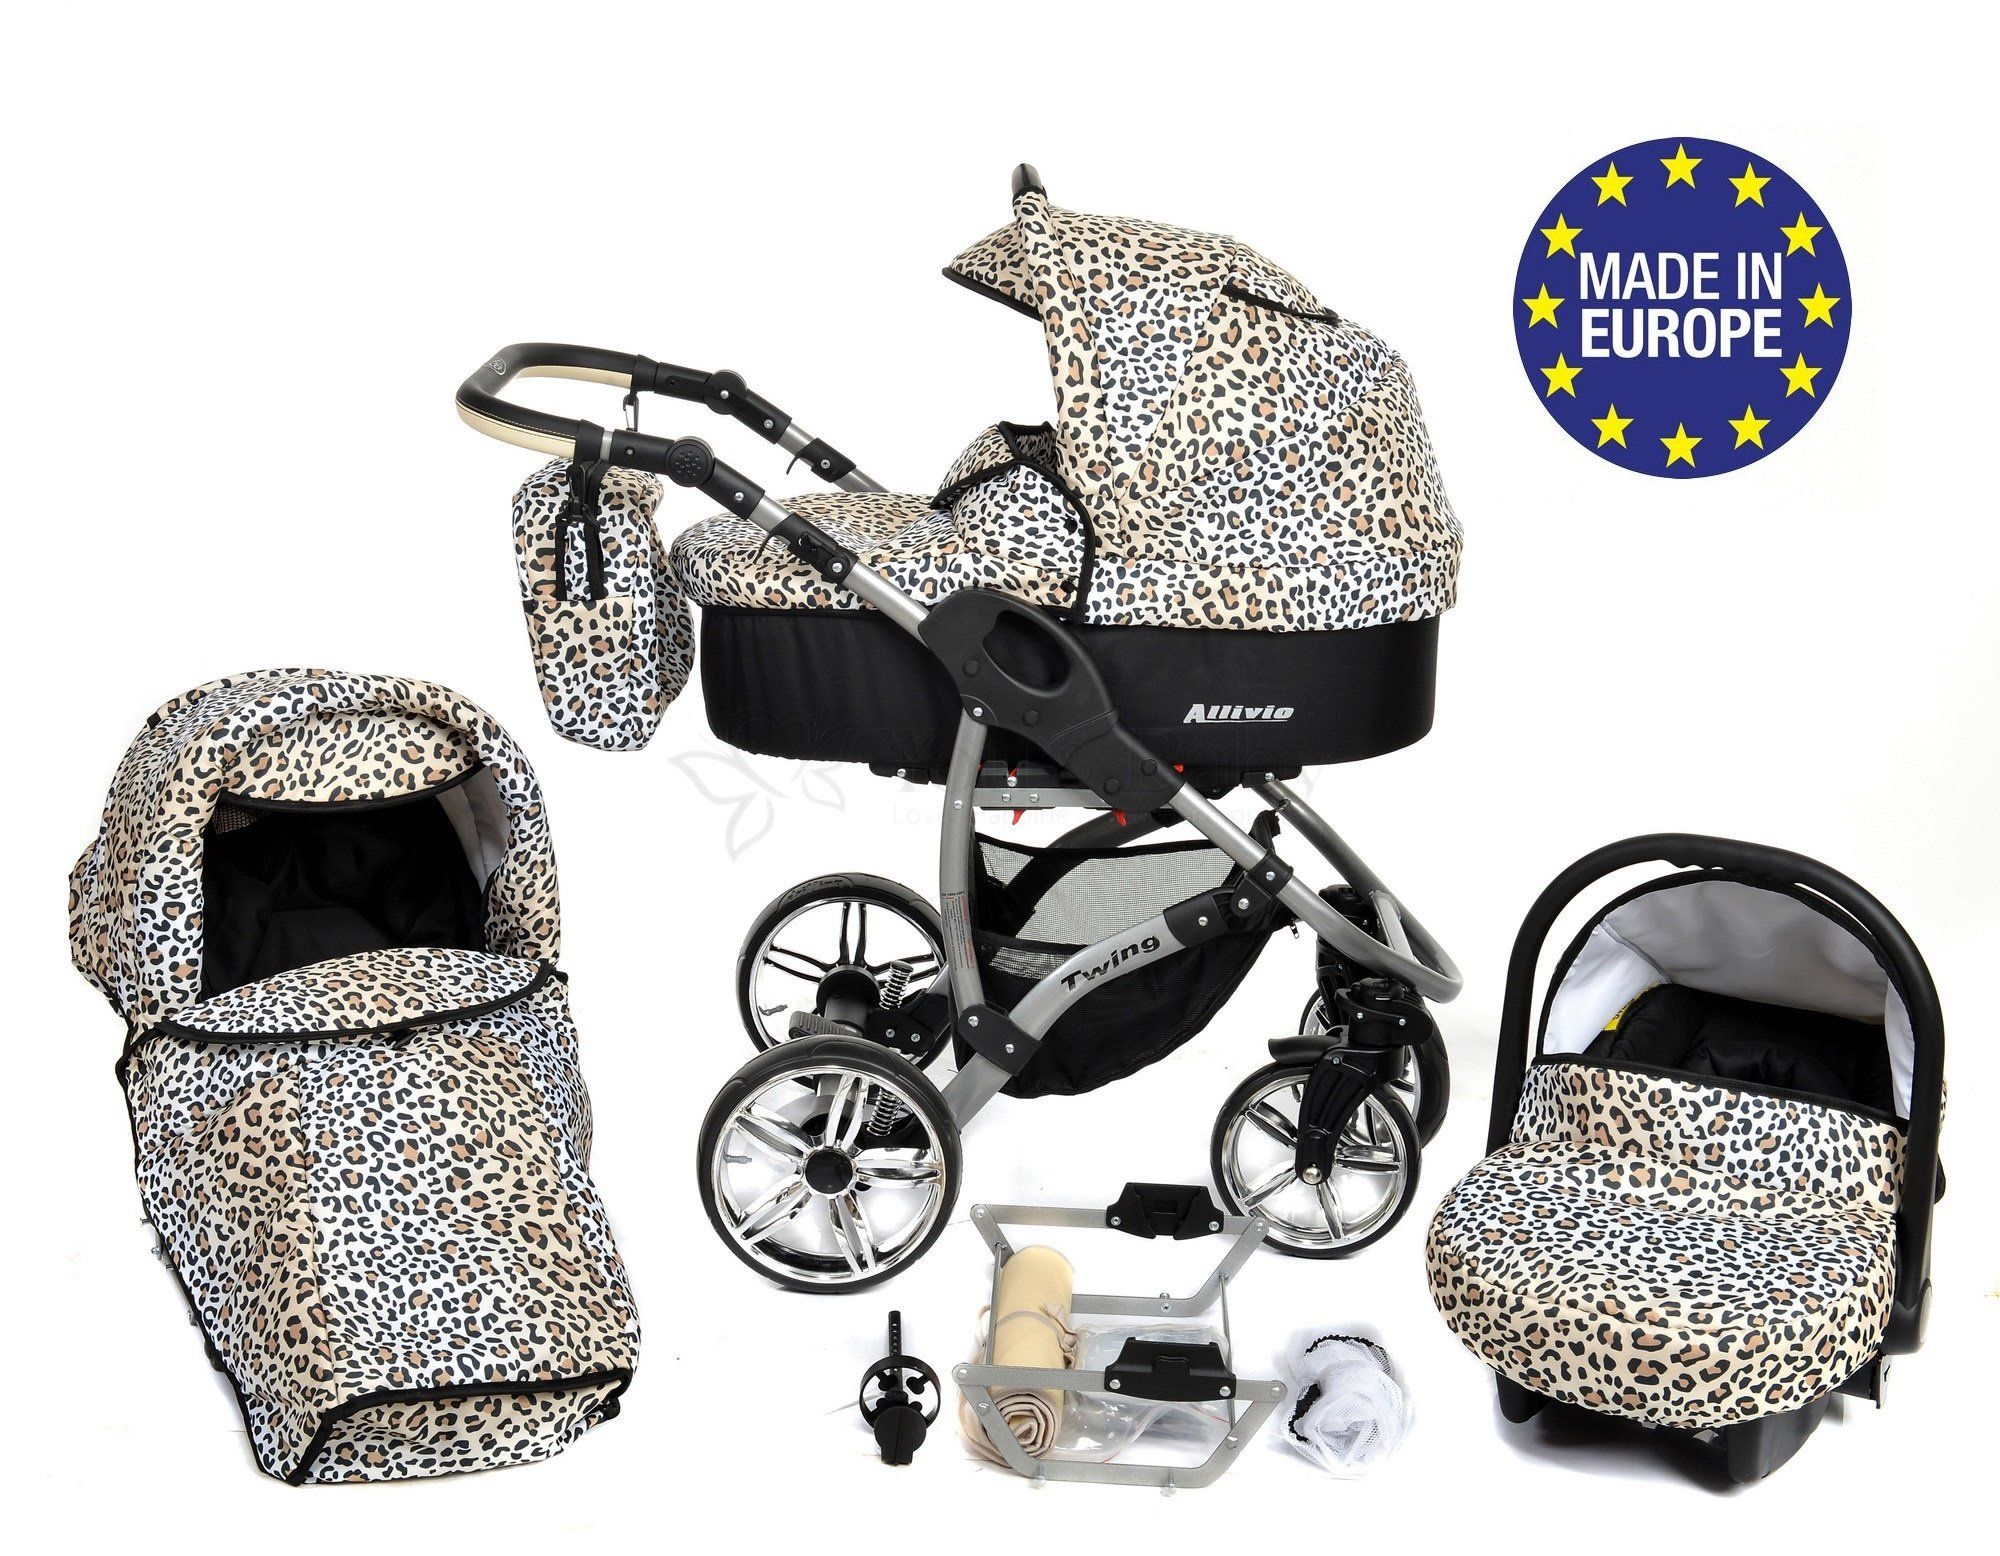 ALLIVIO, 3in1 Travel System With Baby Pram, Car Seat